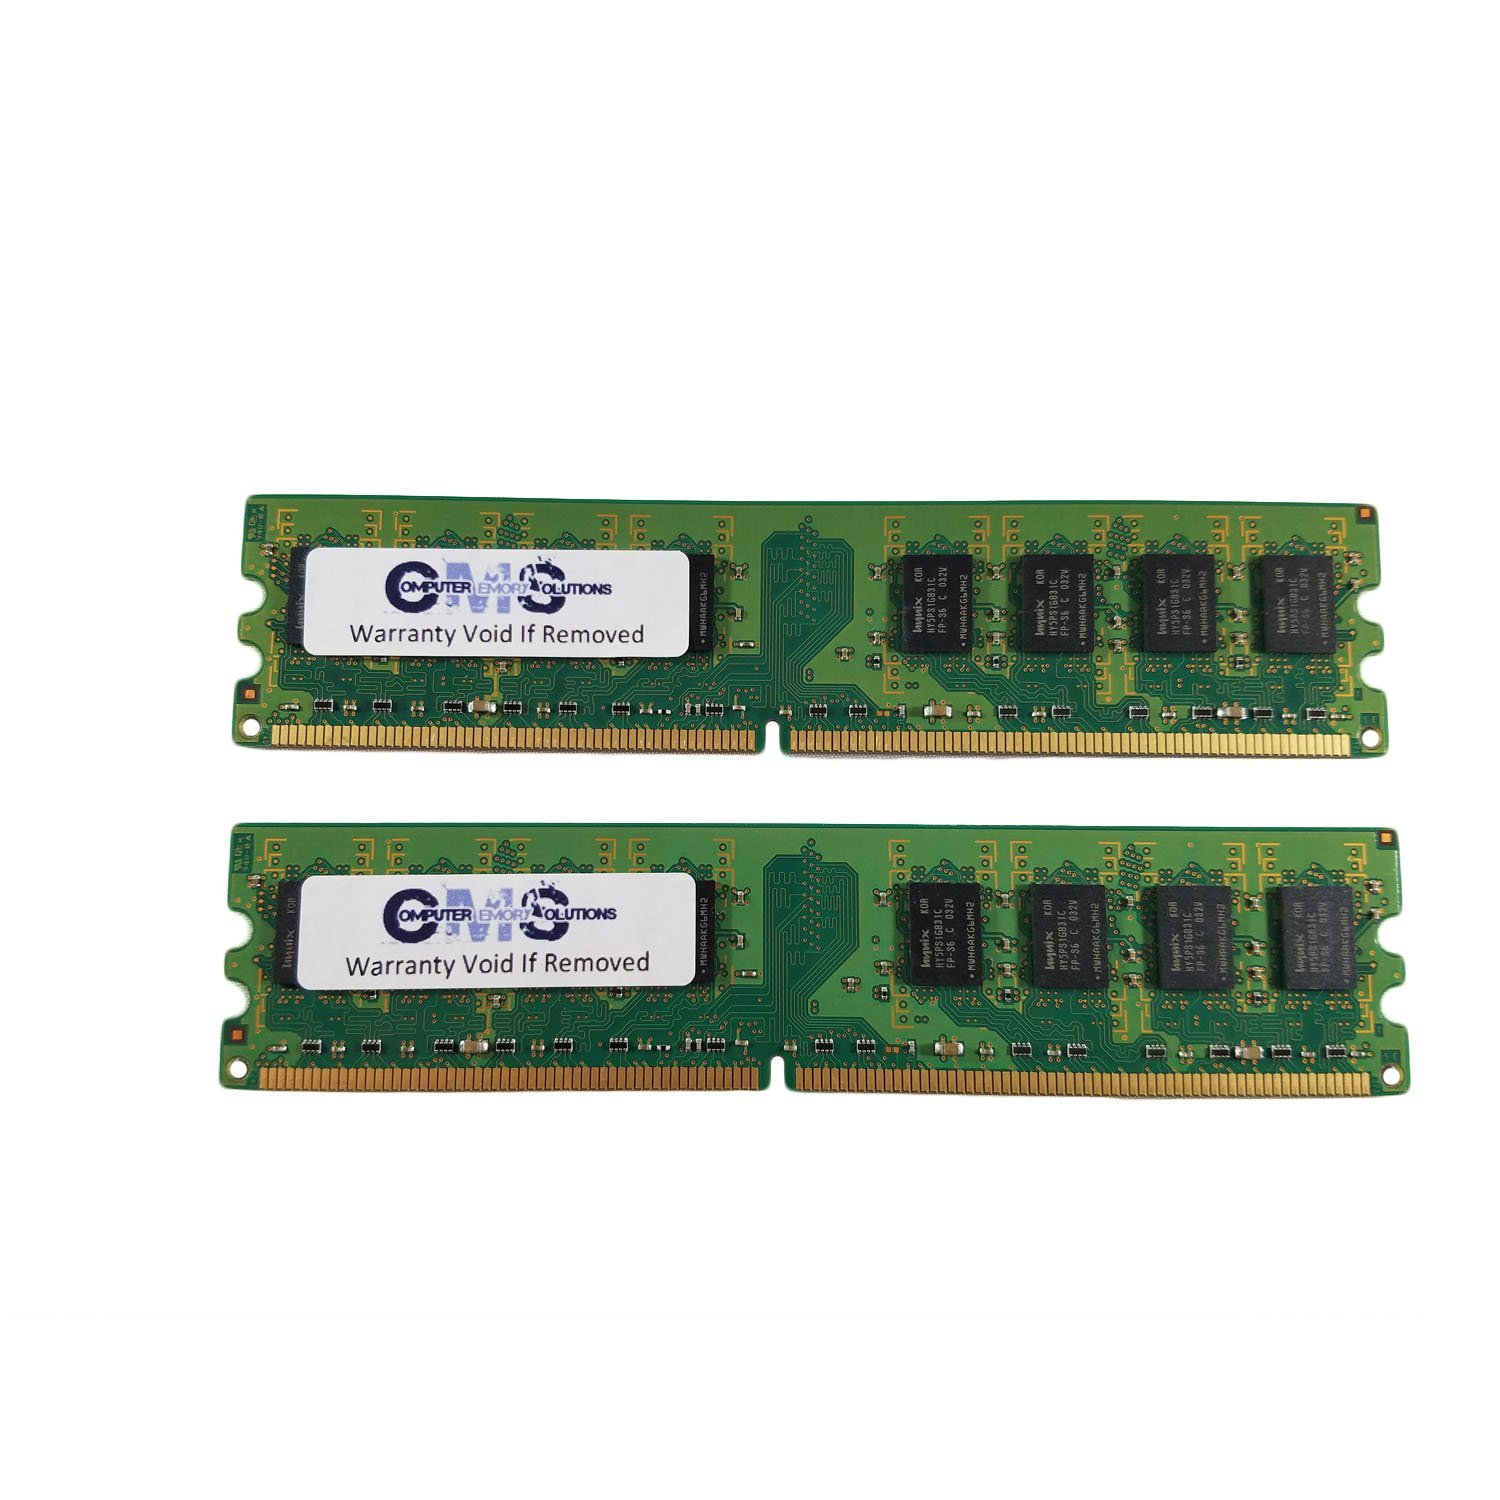 PARTS-QUICK Brand 2GB Memory for Biostar G41D-M7 Motherboard DDR2 PC2-6400 800MHz DIMM Non-ECC RAM Upgrade